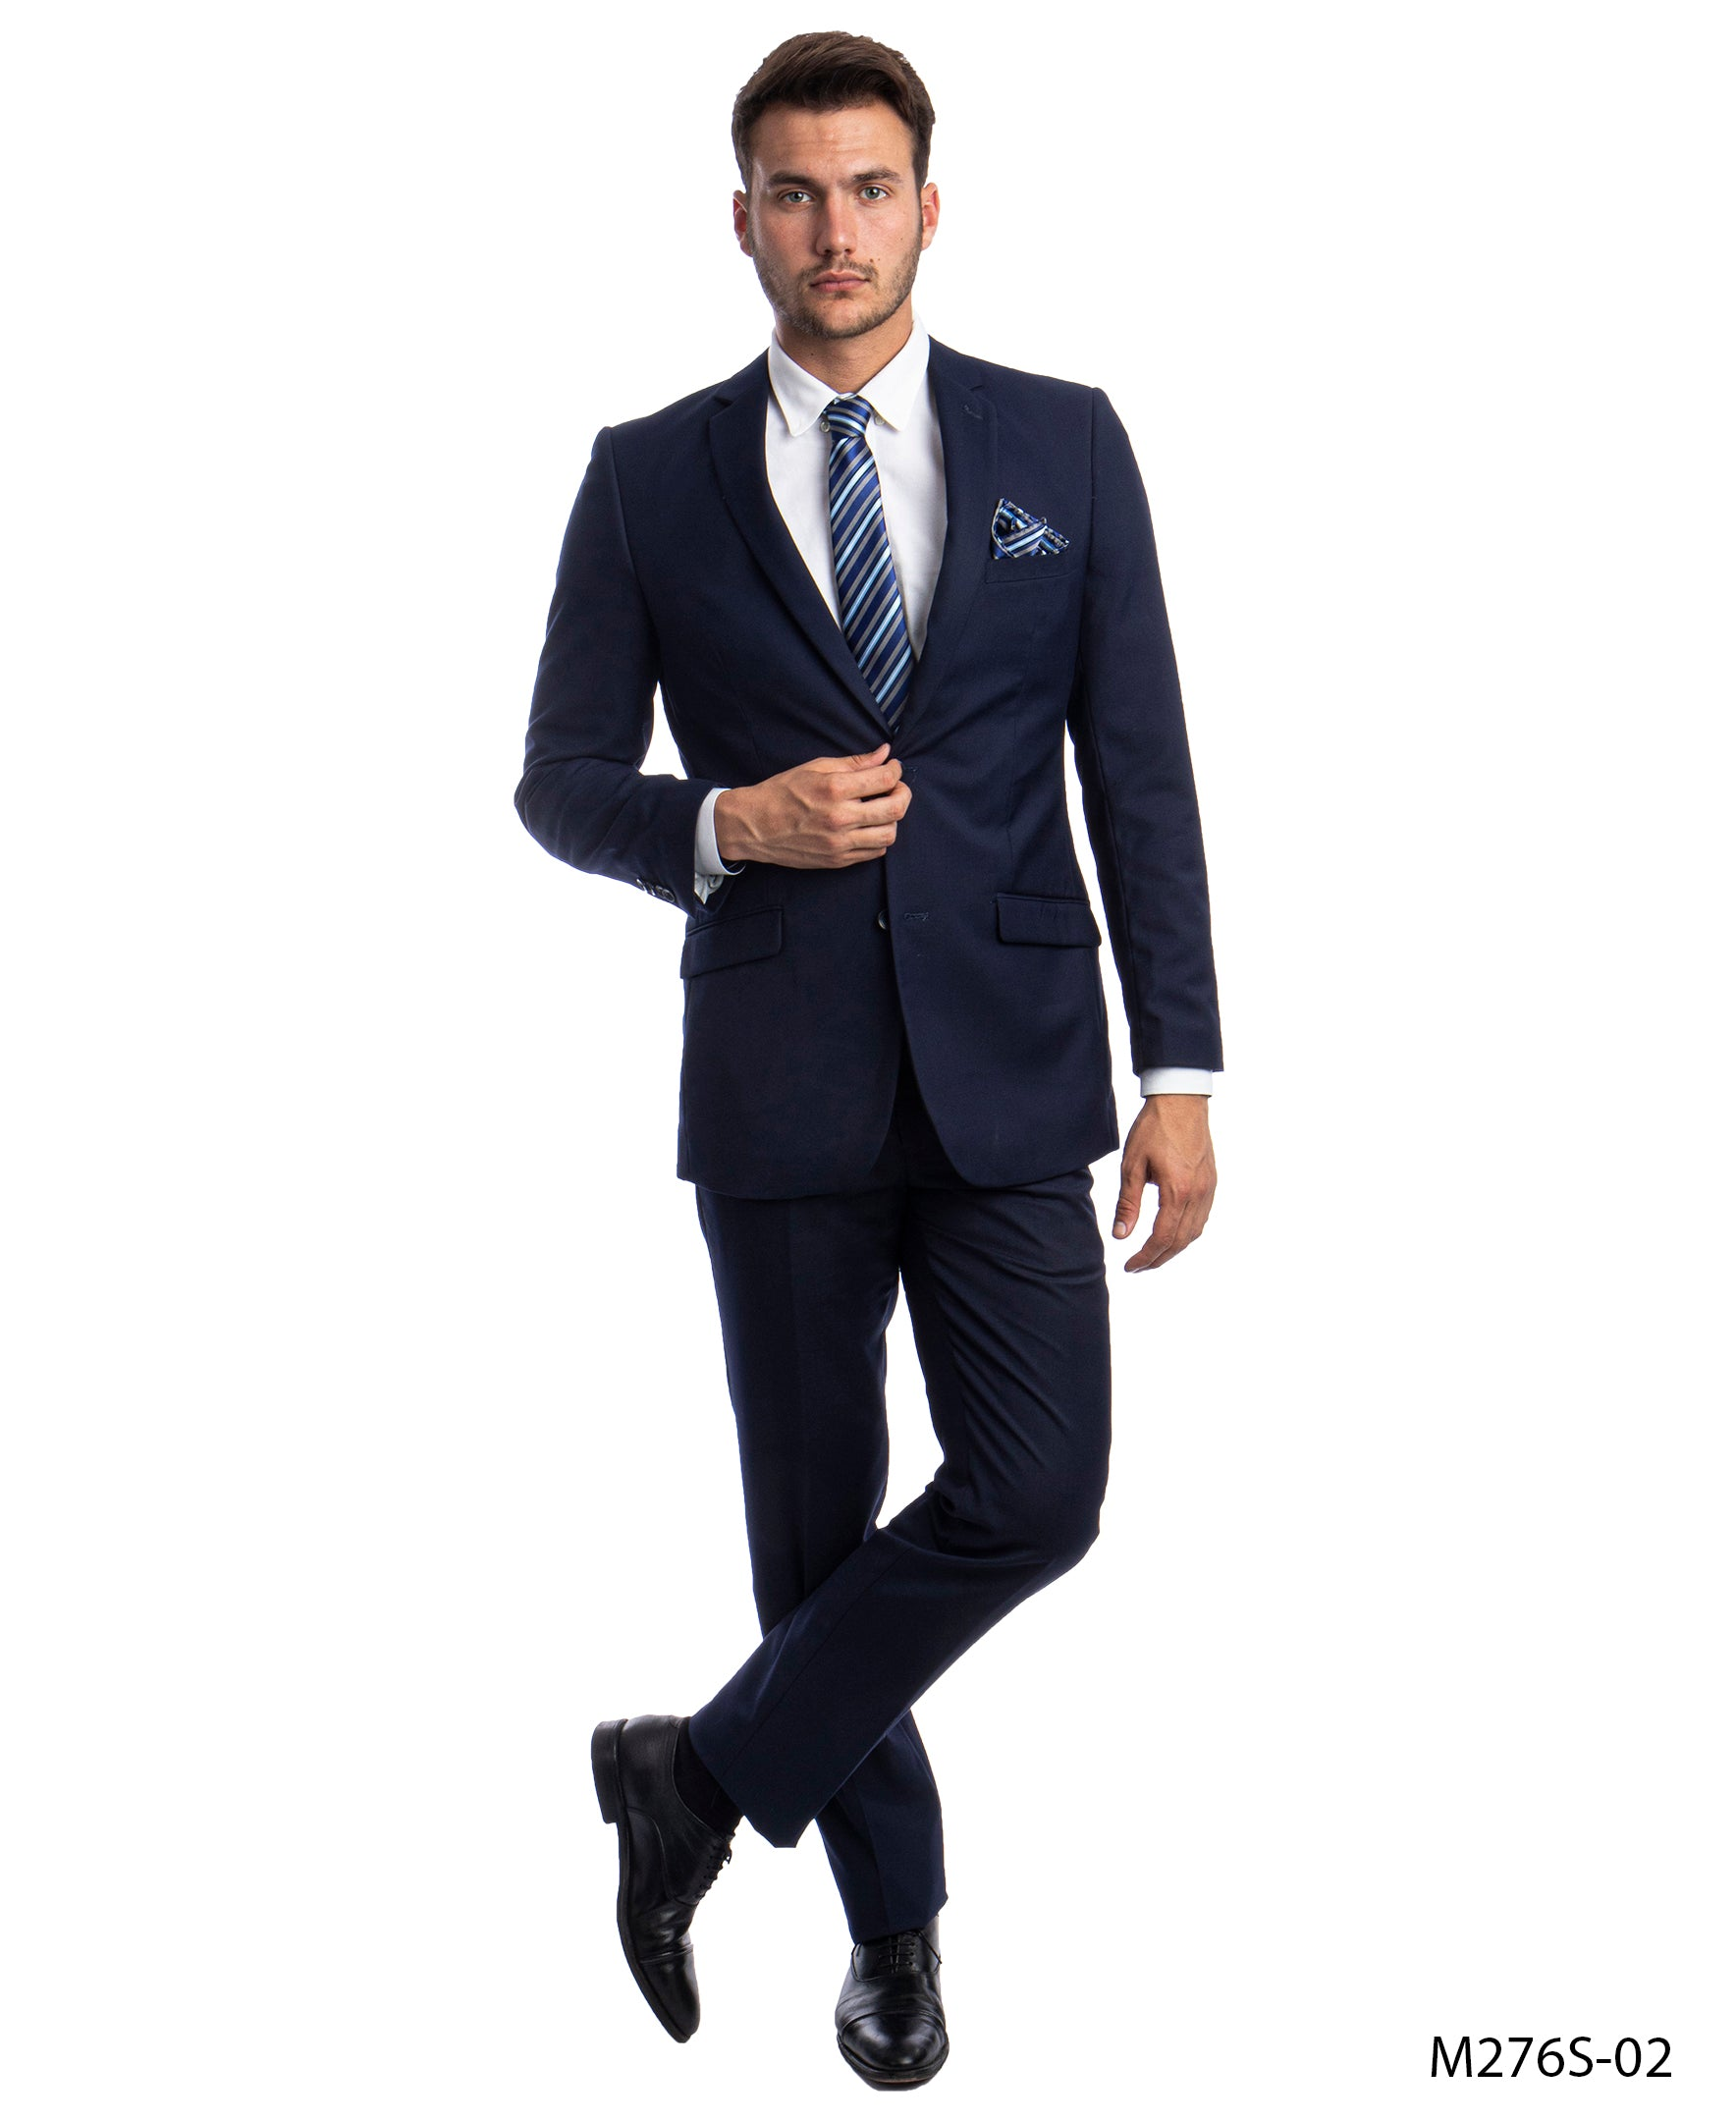 Navy Blue Suit For Men Formal Suits For All Ocassions